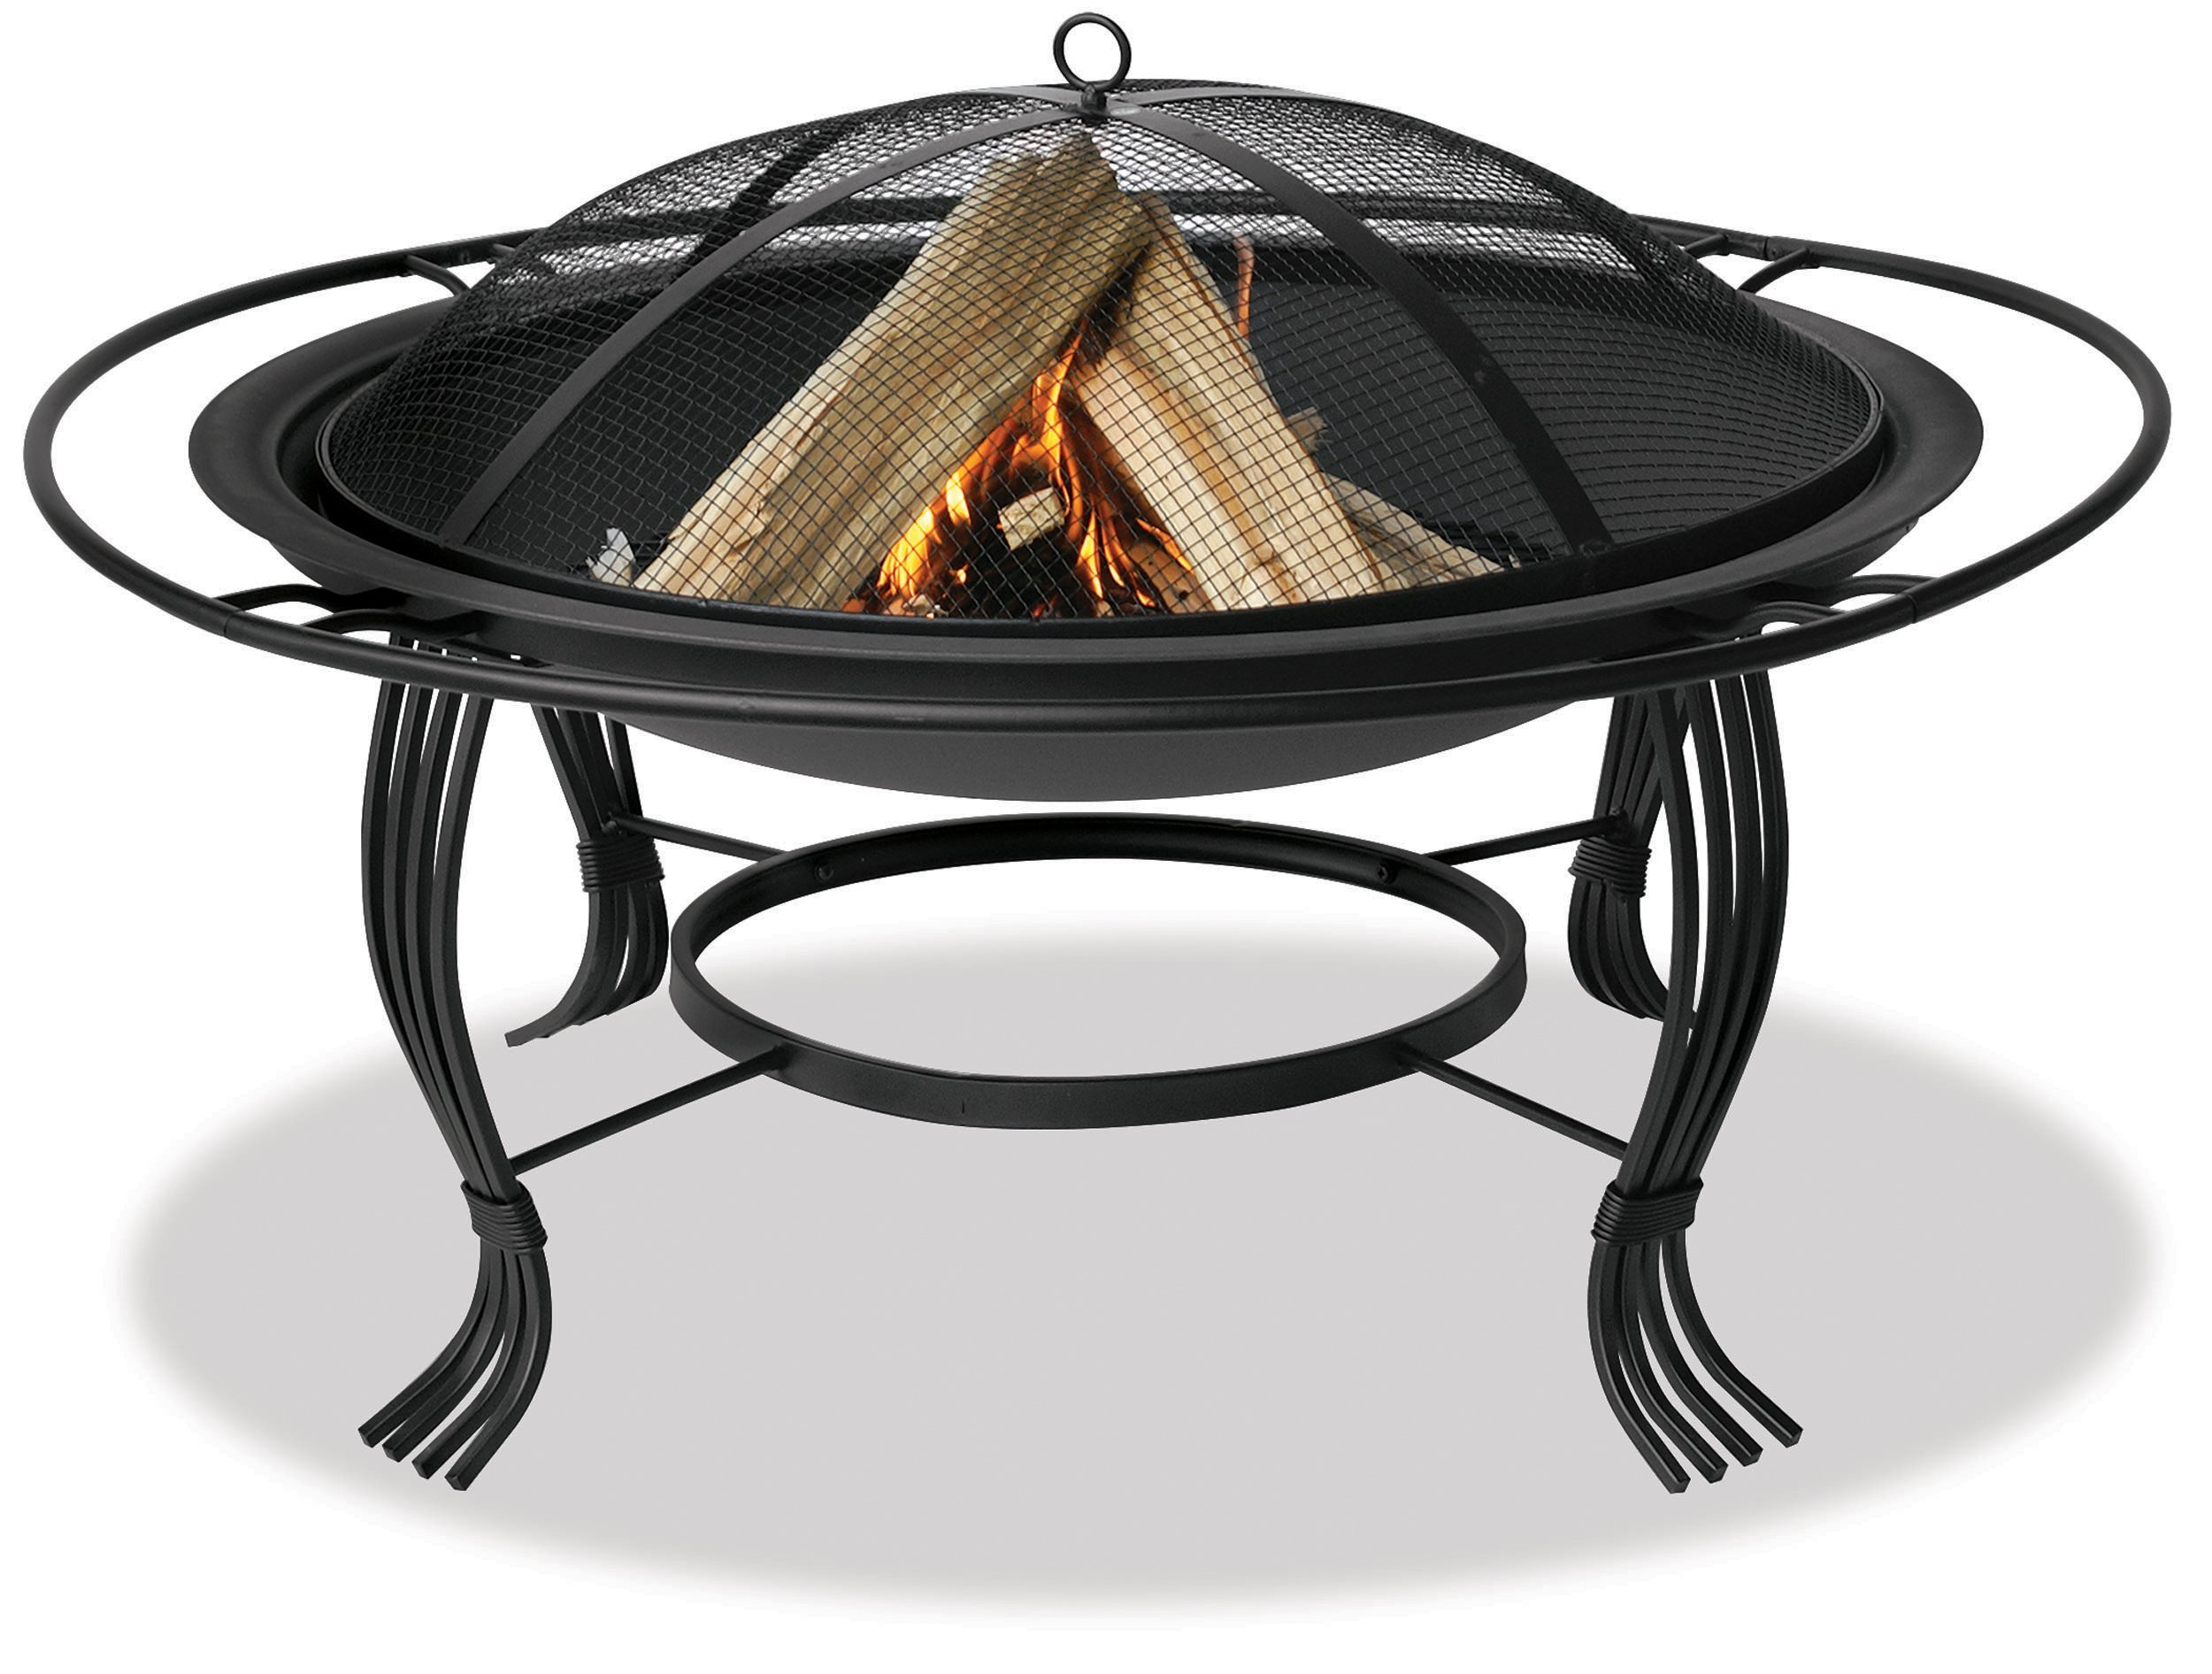 "Endless Summer, WAD1050SP, 34.6 in.Diameter Black Firepit with Outer Ring - 34.6"" diameter bowl Wood burning for convenient heating Spark guard included for safety - patio, fire-pits-outdoor-fireplaces, outdoor-decor - 81cYYDK7XzL -"